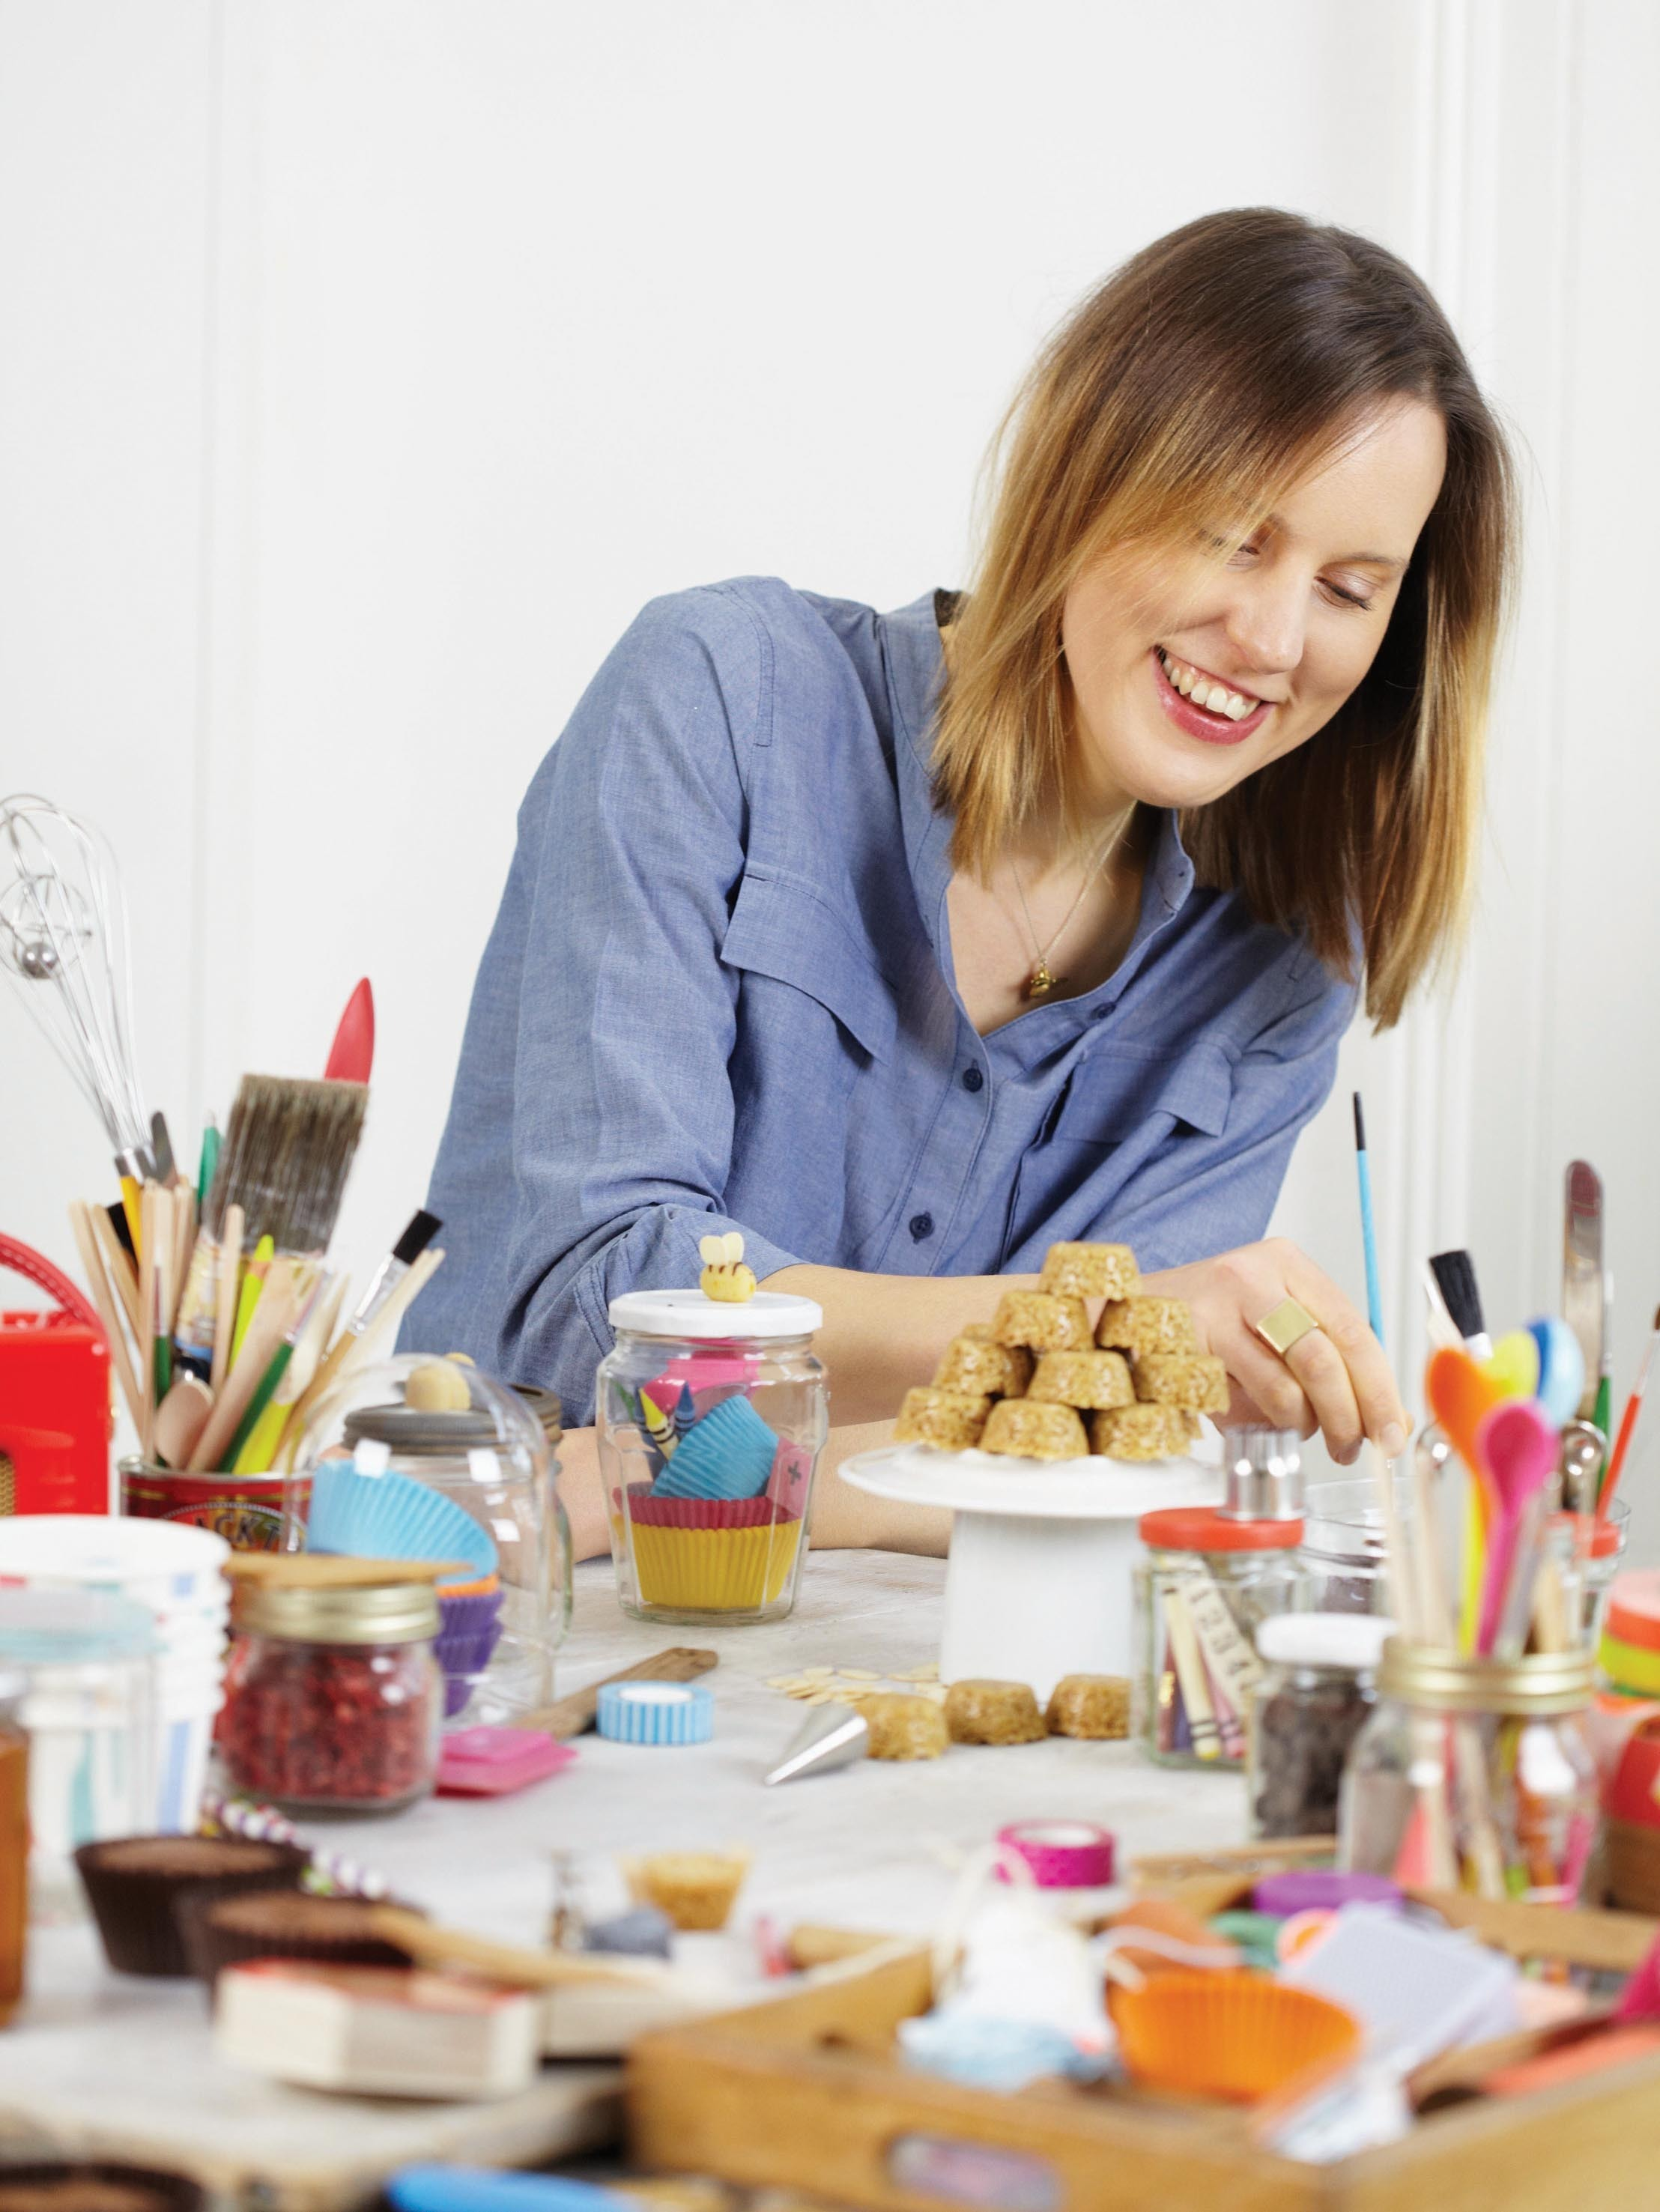 Former British Bake Off contestant Frances Quinn